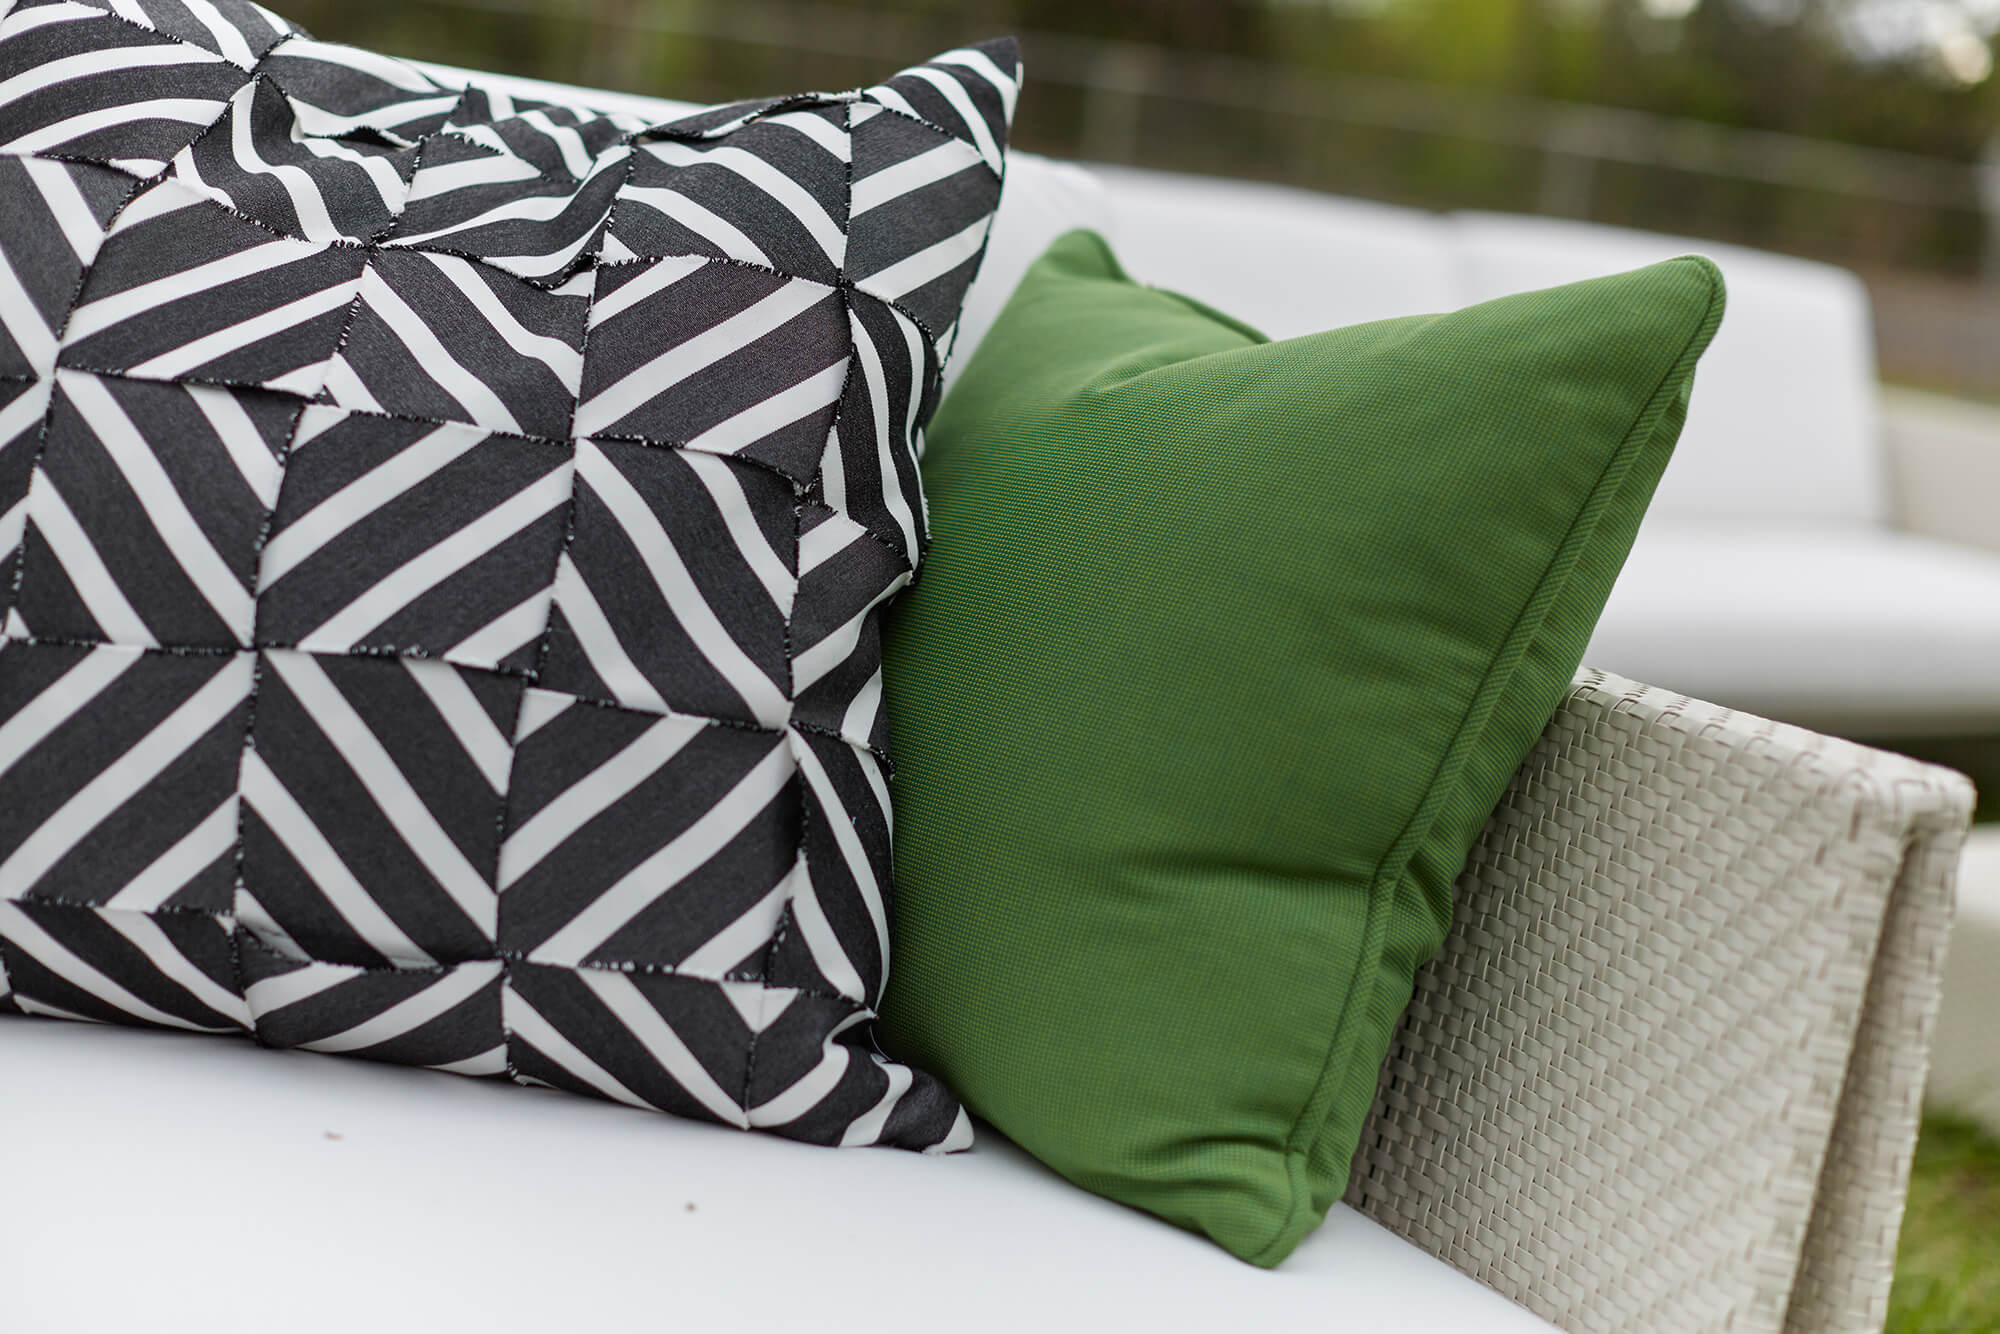 Pillows made of green Sunbrella upholstery fabric and black and white striped Sunbrella fabric